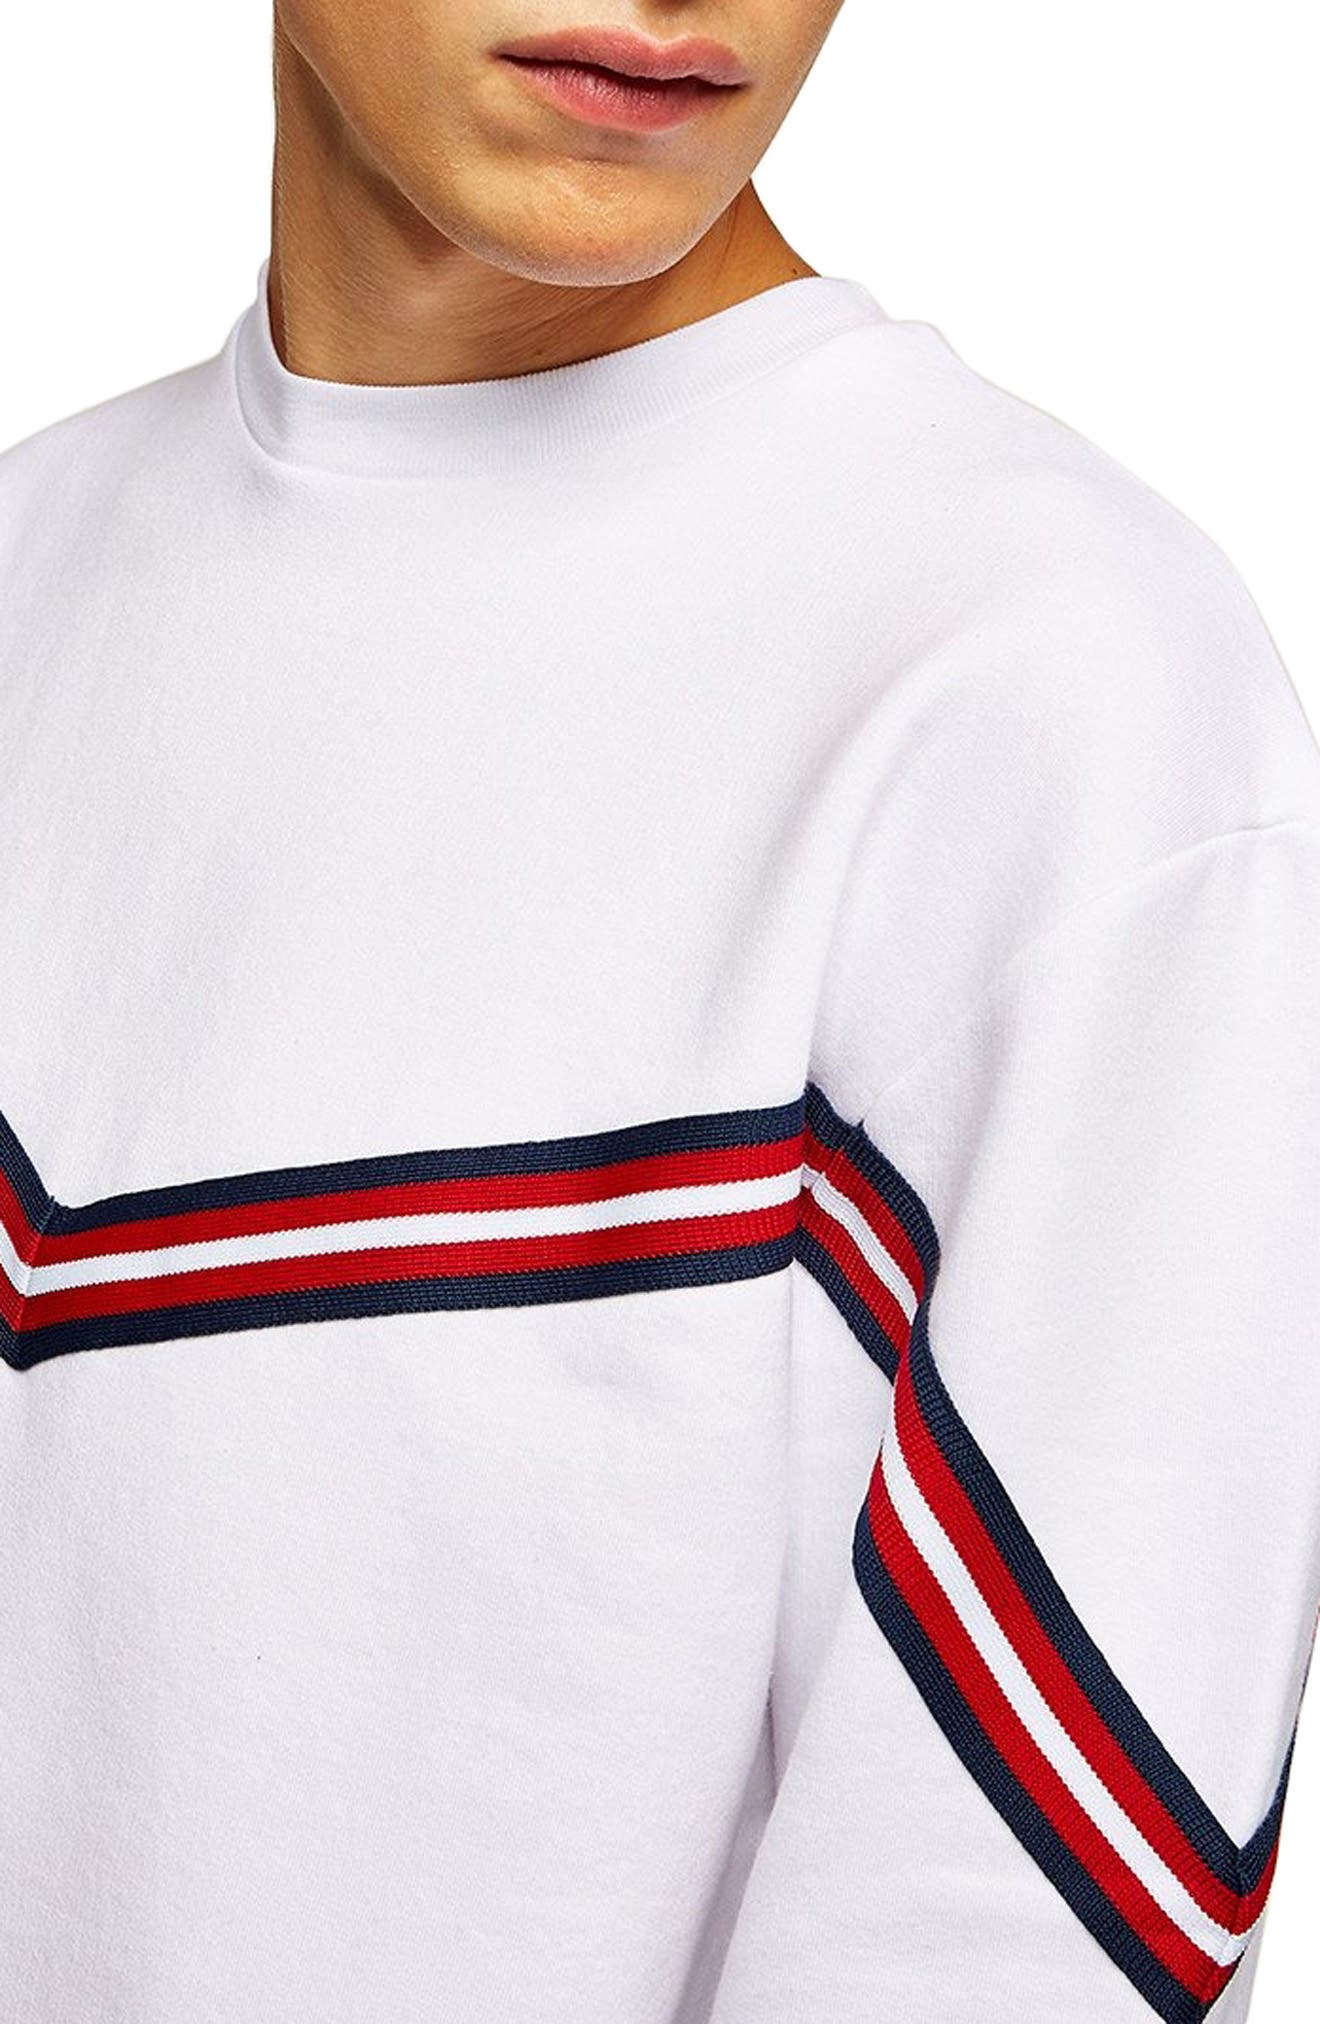 Chevron Tape Sweatshirt,                             Alternate thumbnail 3, color,                             WHITE MULTI